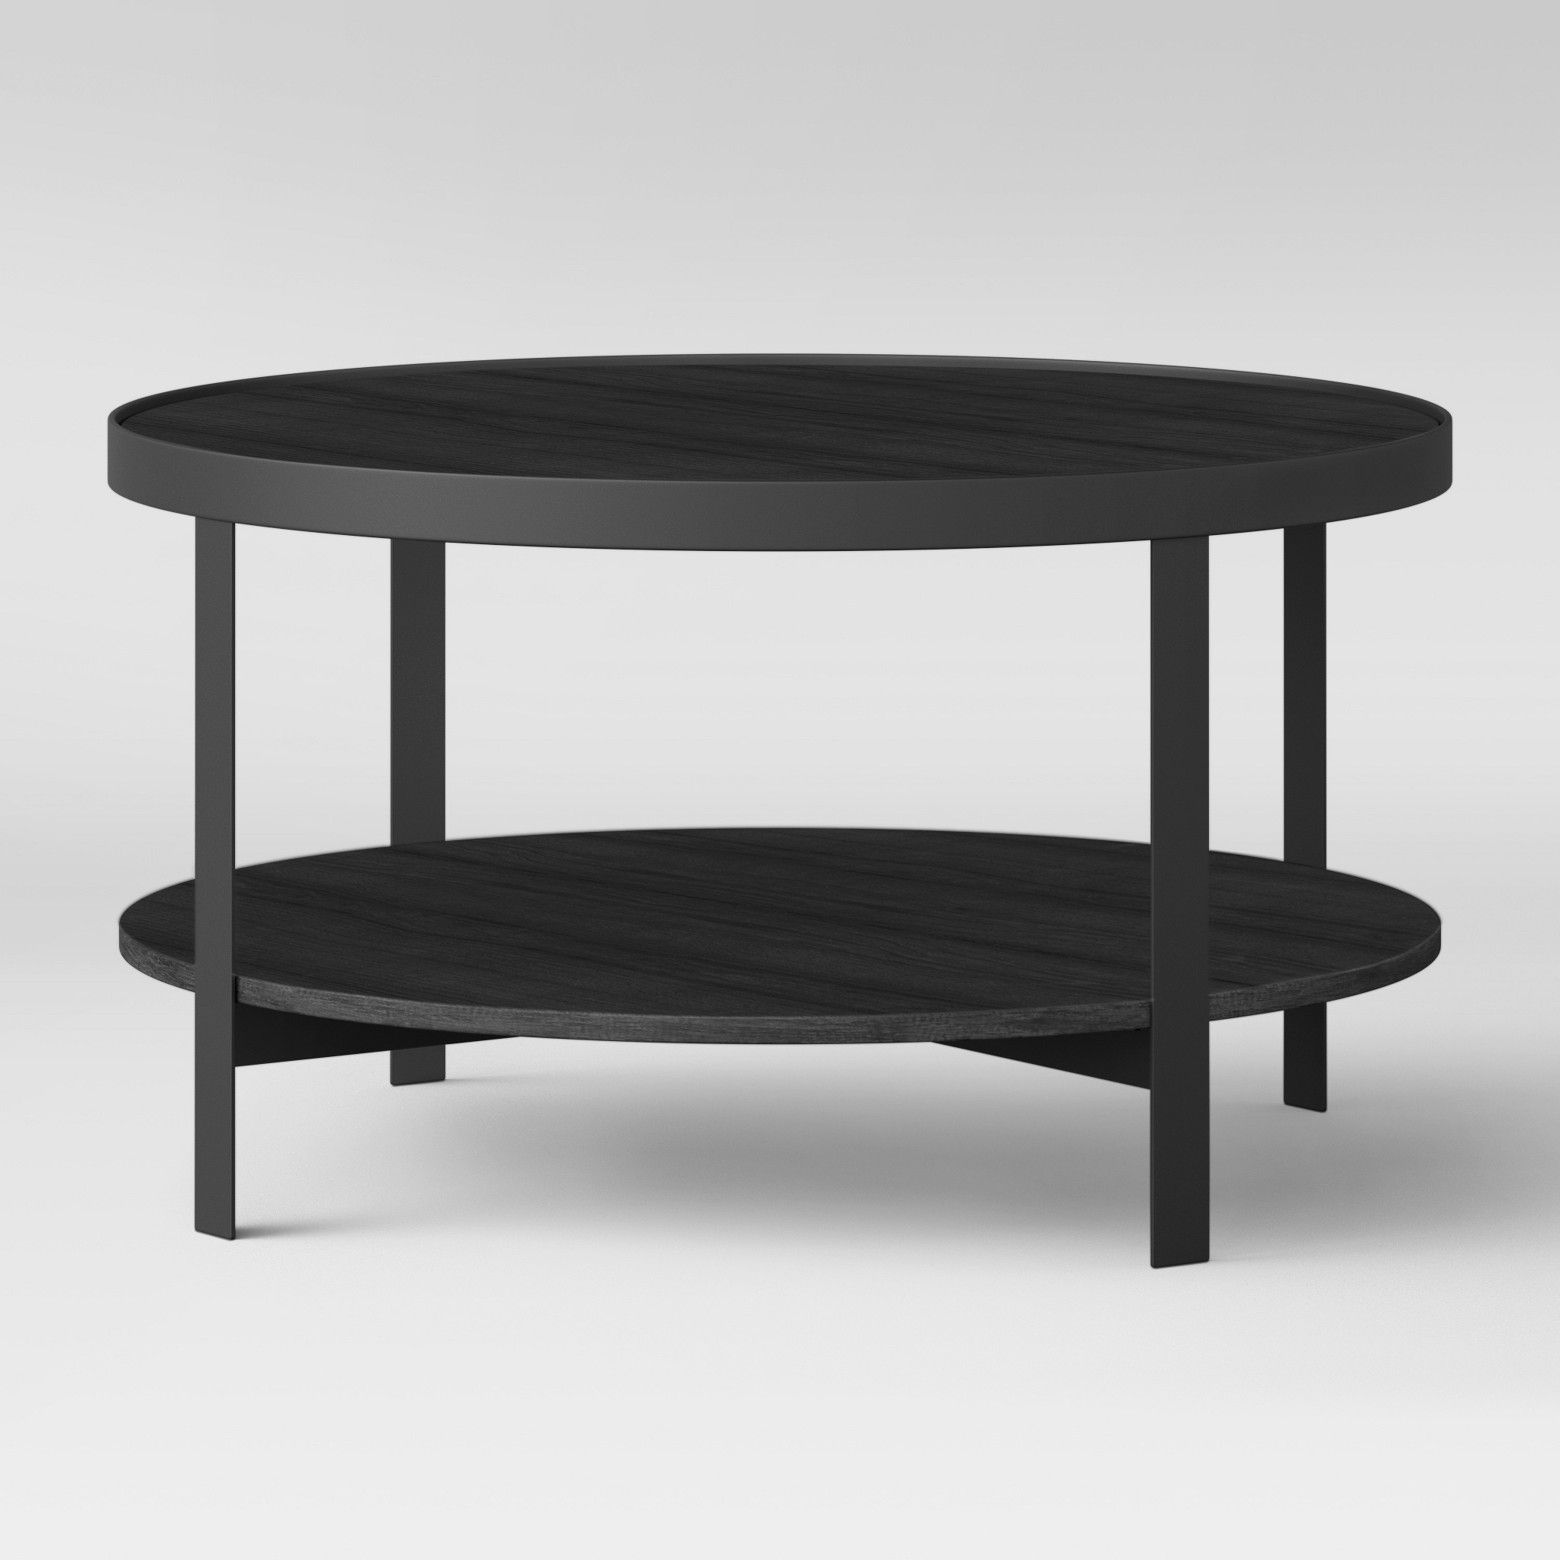 Riehl Metal Round Coffee Table Black Project 62 White Round Coffee Table Black Coffee Tables Small Coffee Table